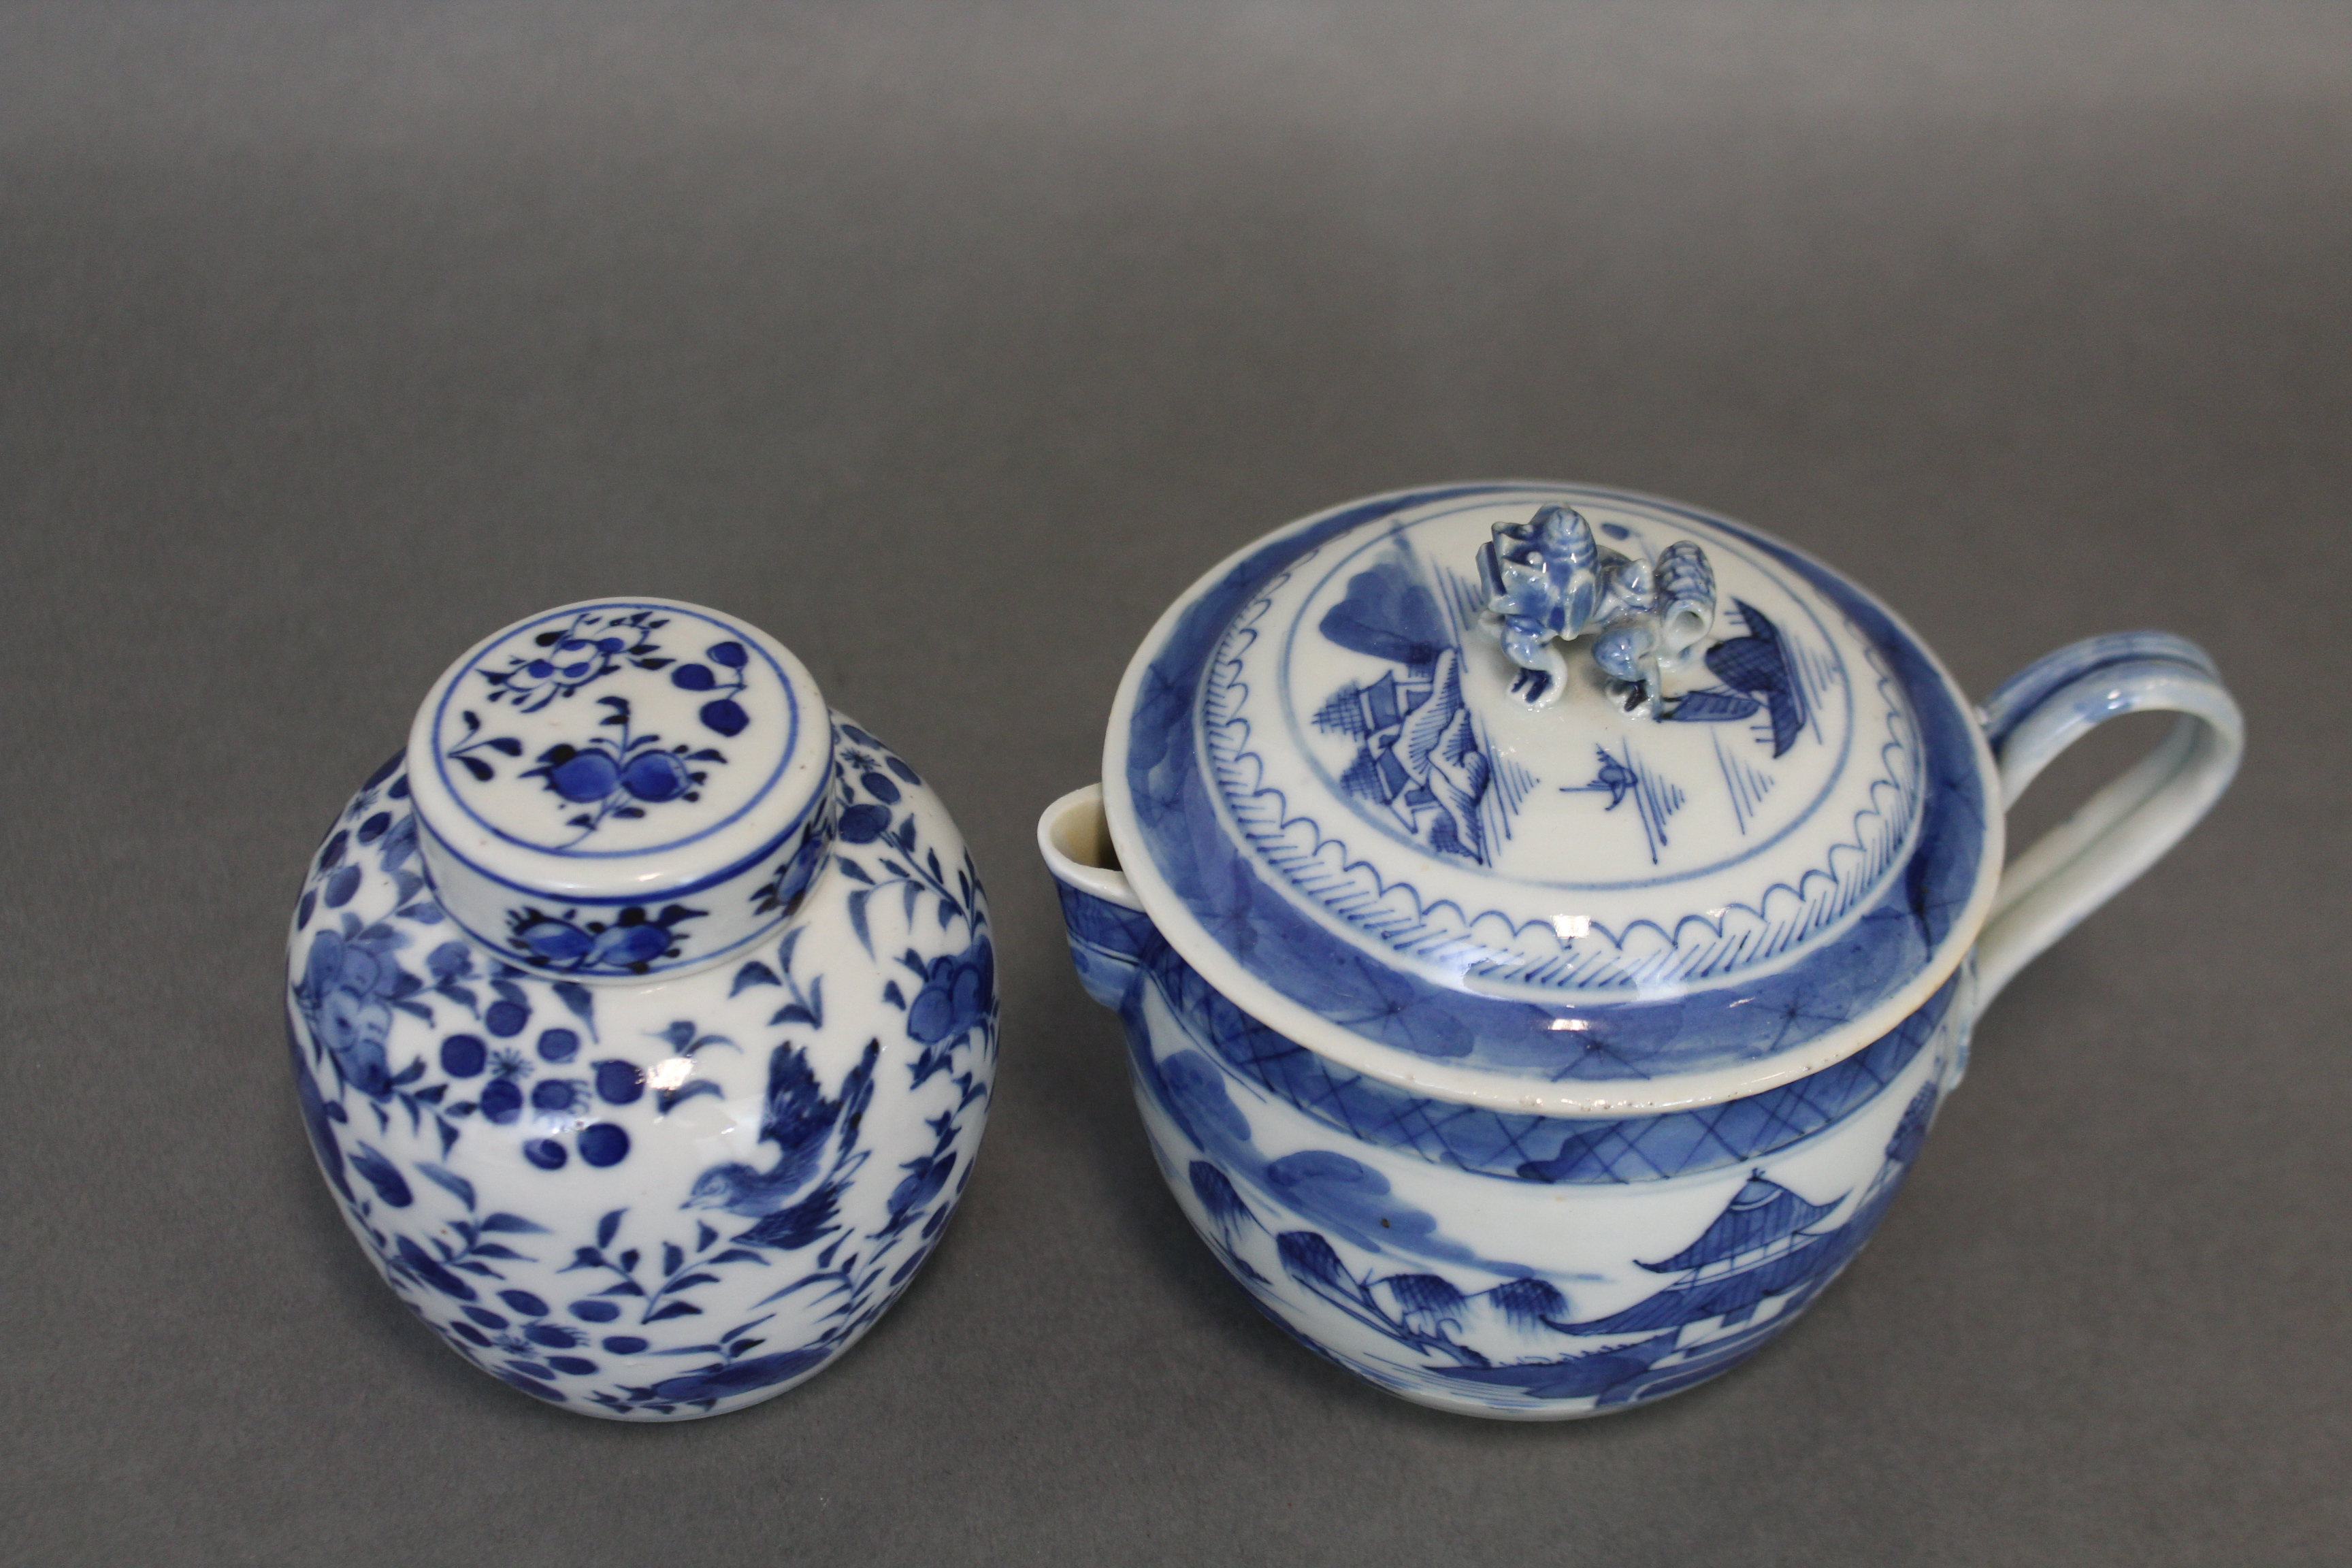 Lot 198 - A Chinese blue & white porcelain small jar & cover with all-over decoration of animals amongst